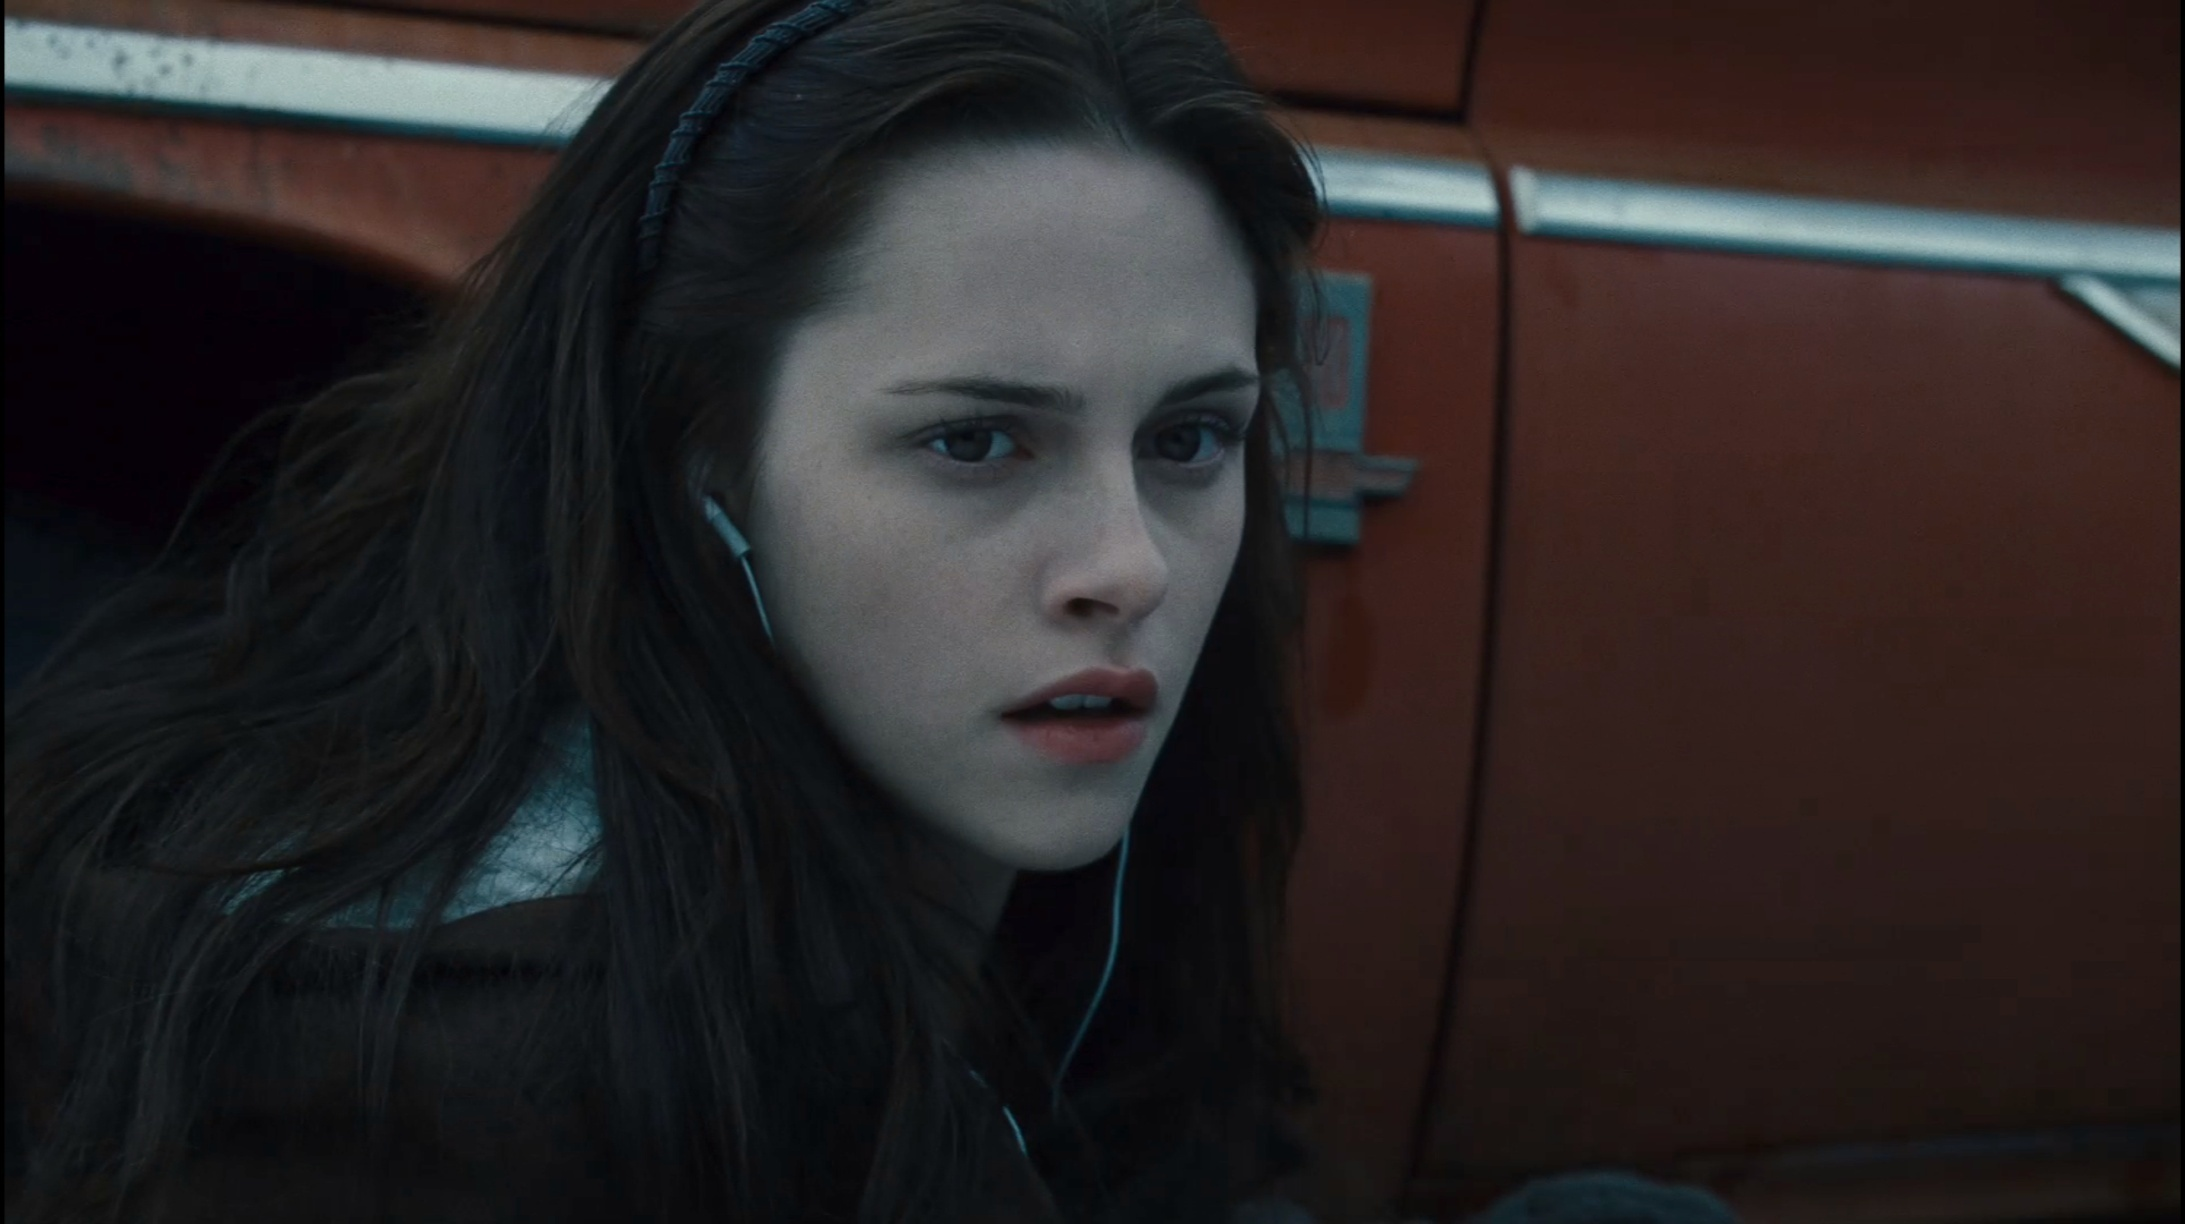 Vampire twilight 1 trailer - New movies coming out to buy